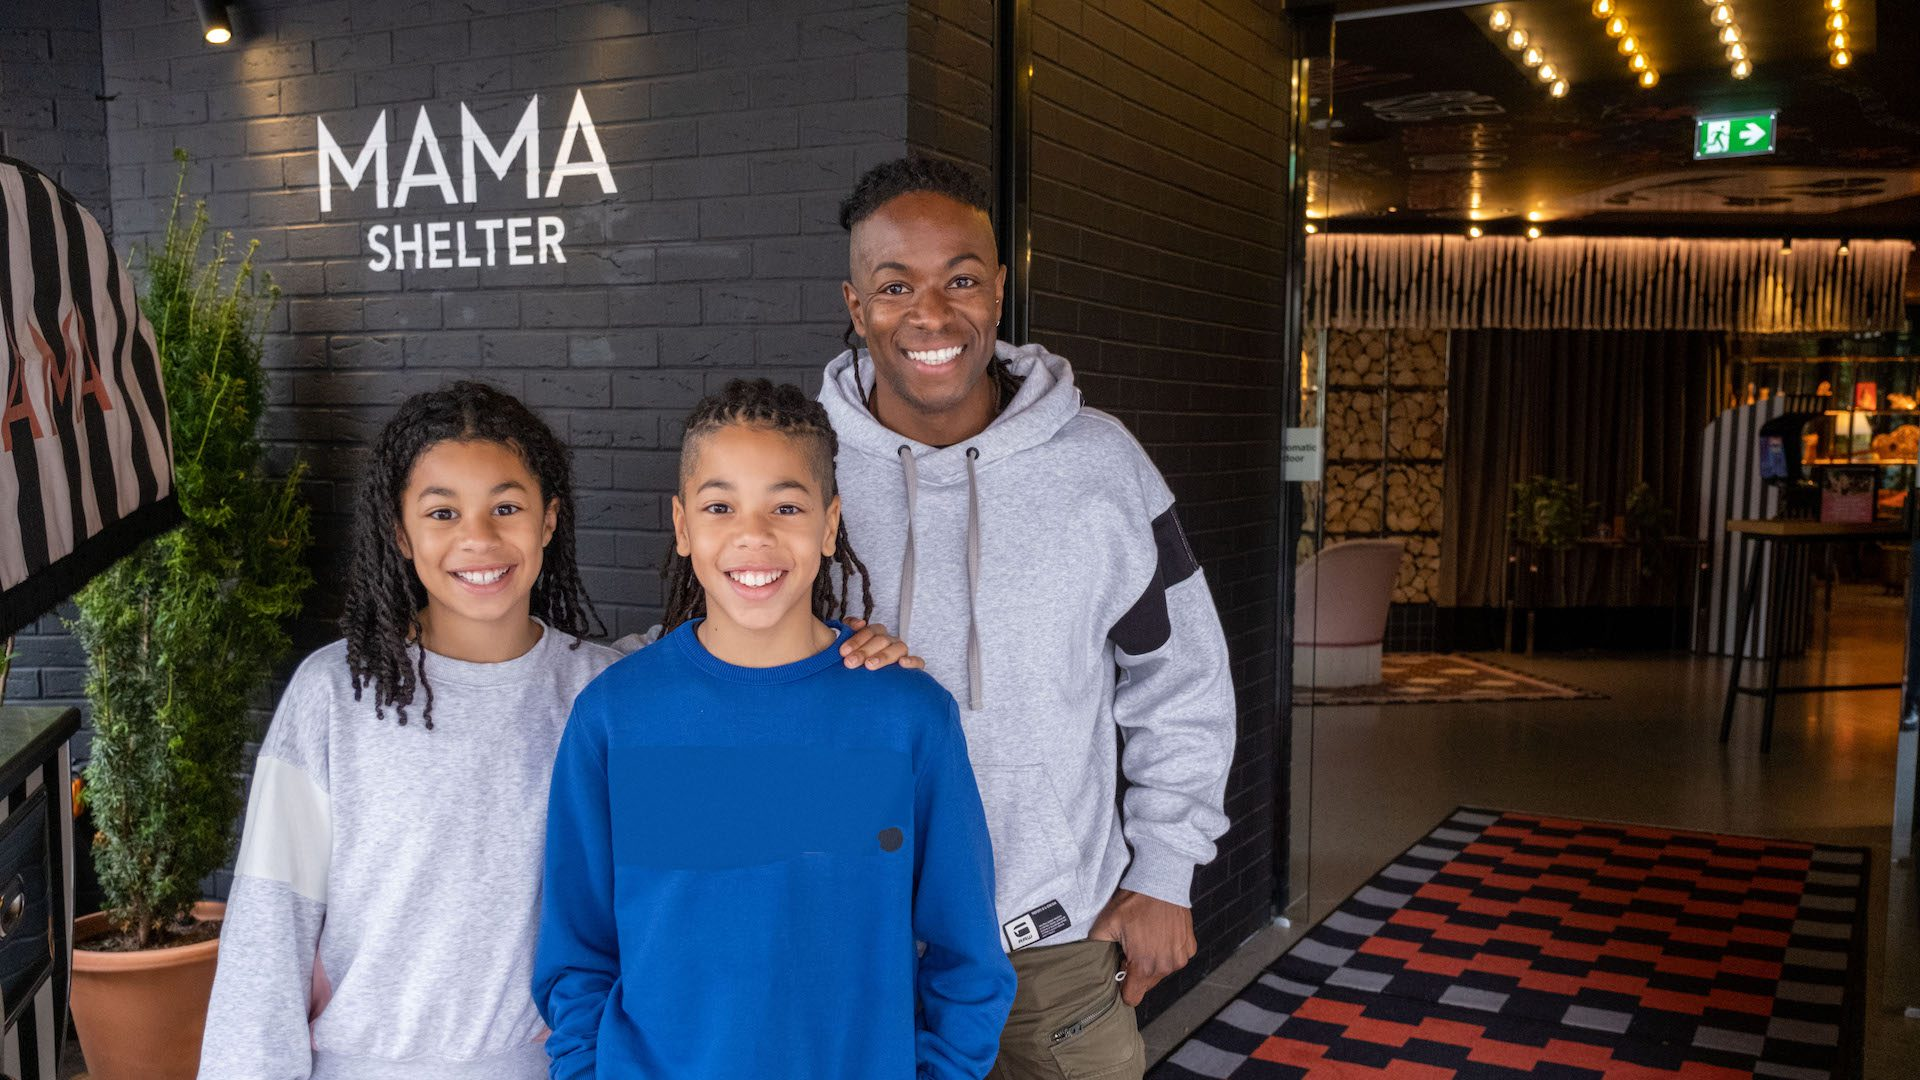 Mama Shelter Hotel Review